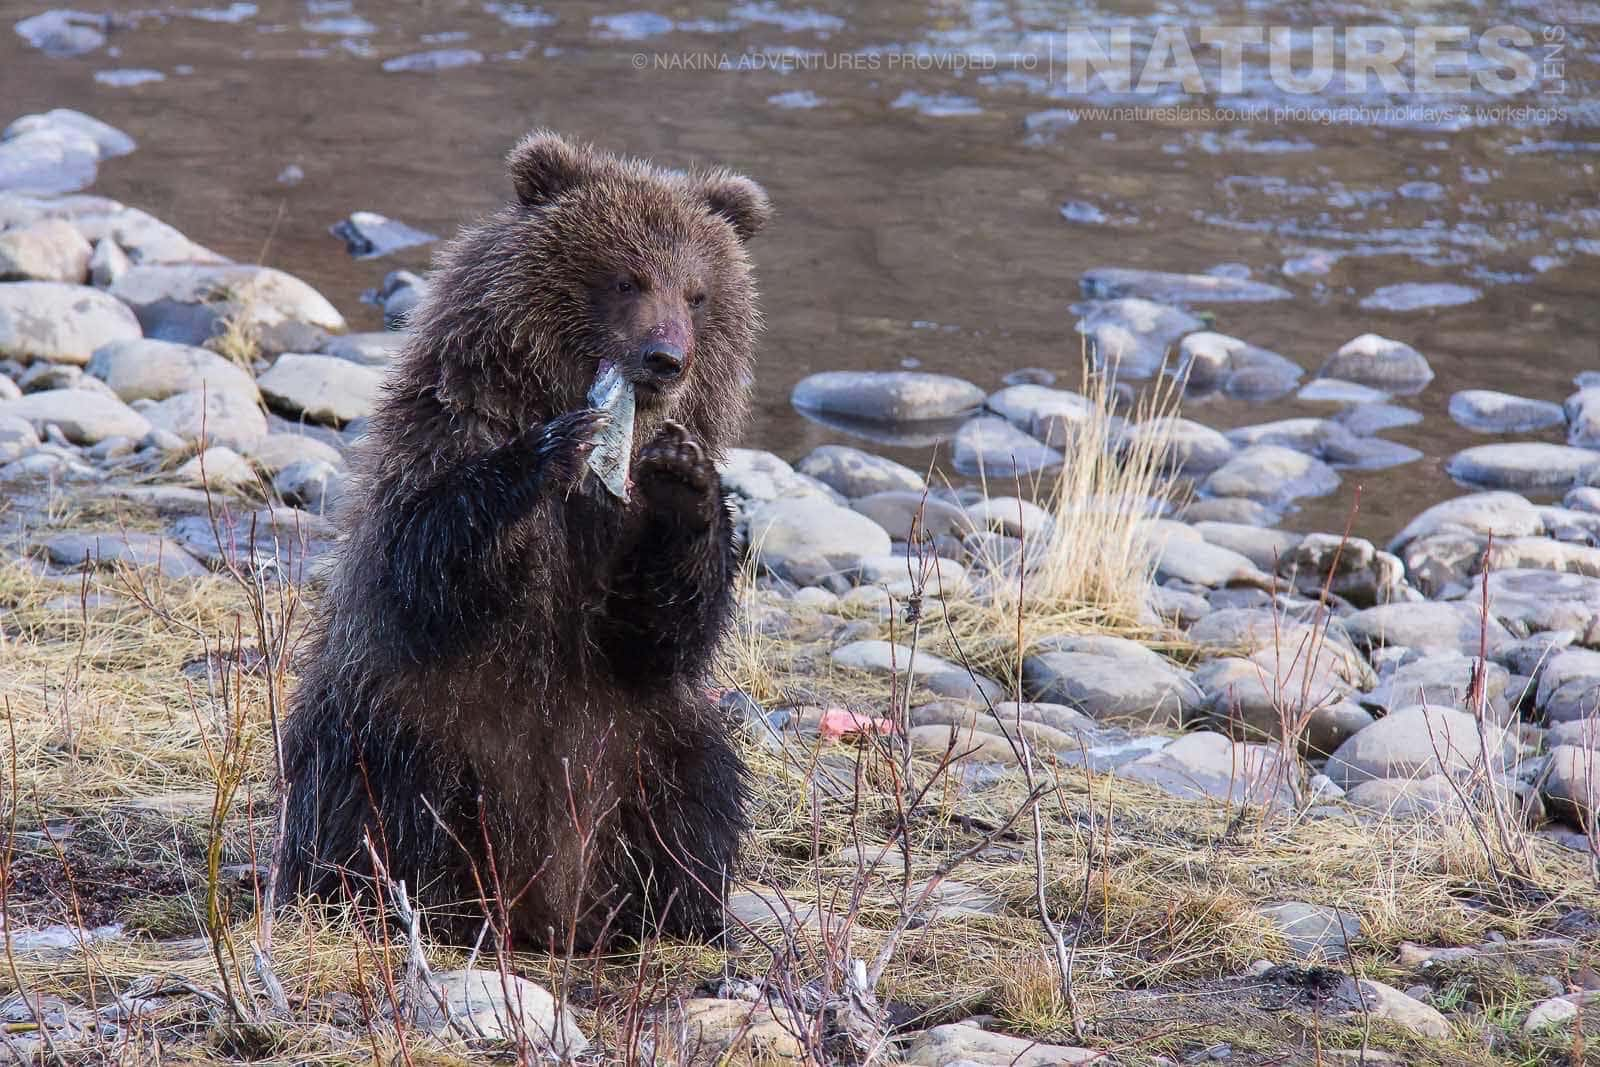 A Young Grizzly Bear Eats A Salmon That Was Caught From Fishing Branch River Typical Of The Kind Of Image That May Be Captured On The Ice Bears Of The Yukon Photographic Holiday